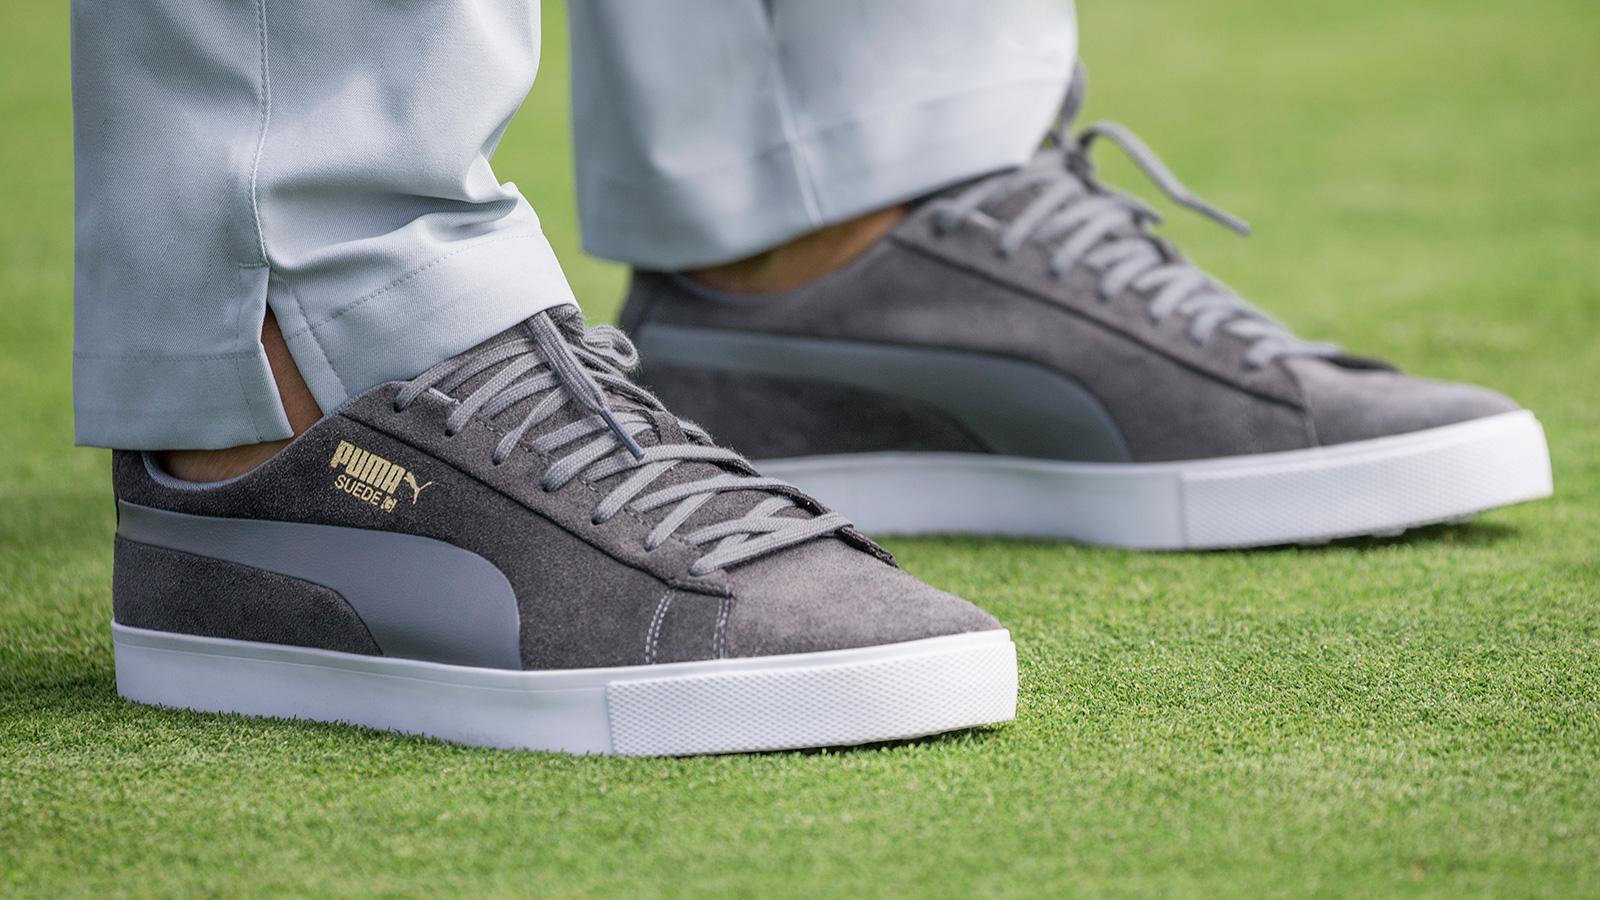 Puma Suede G Golf Shoes